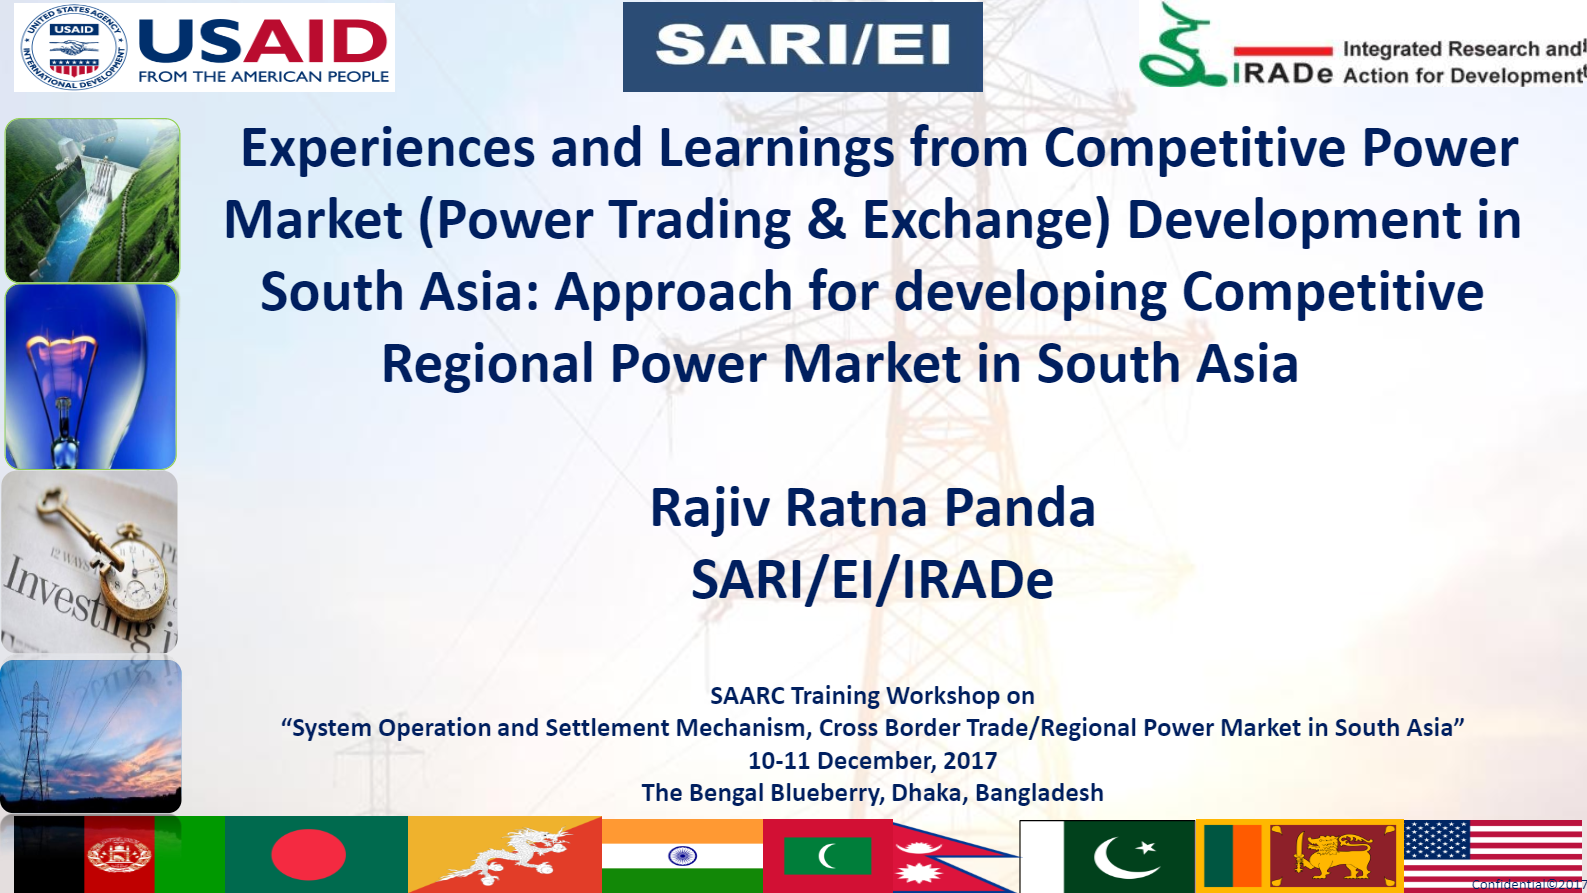 Experiences-and-Learnings-from-Competitive-Power-Market-Power-Trading-Exchange-Development-in-South-Asia-Approach-for-developing-Competitive-Regional-Power-Market-in-South-Asia-Rajiv-SARI-EI-IRADe